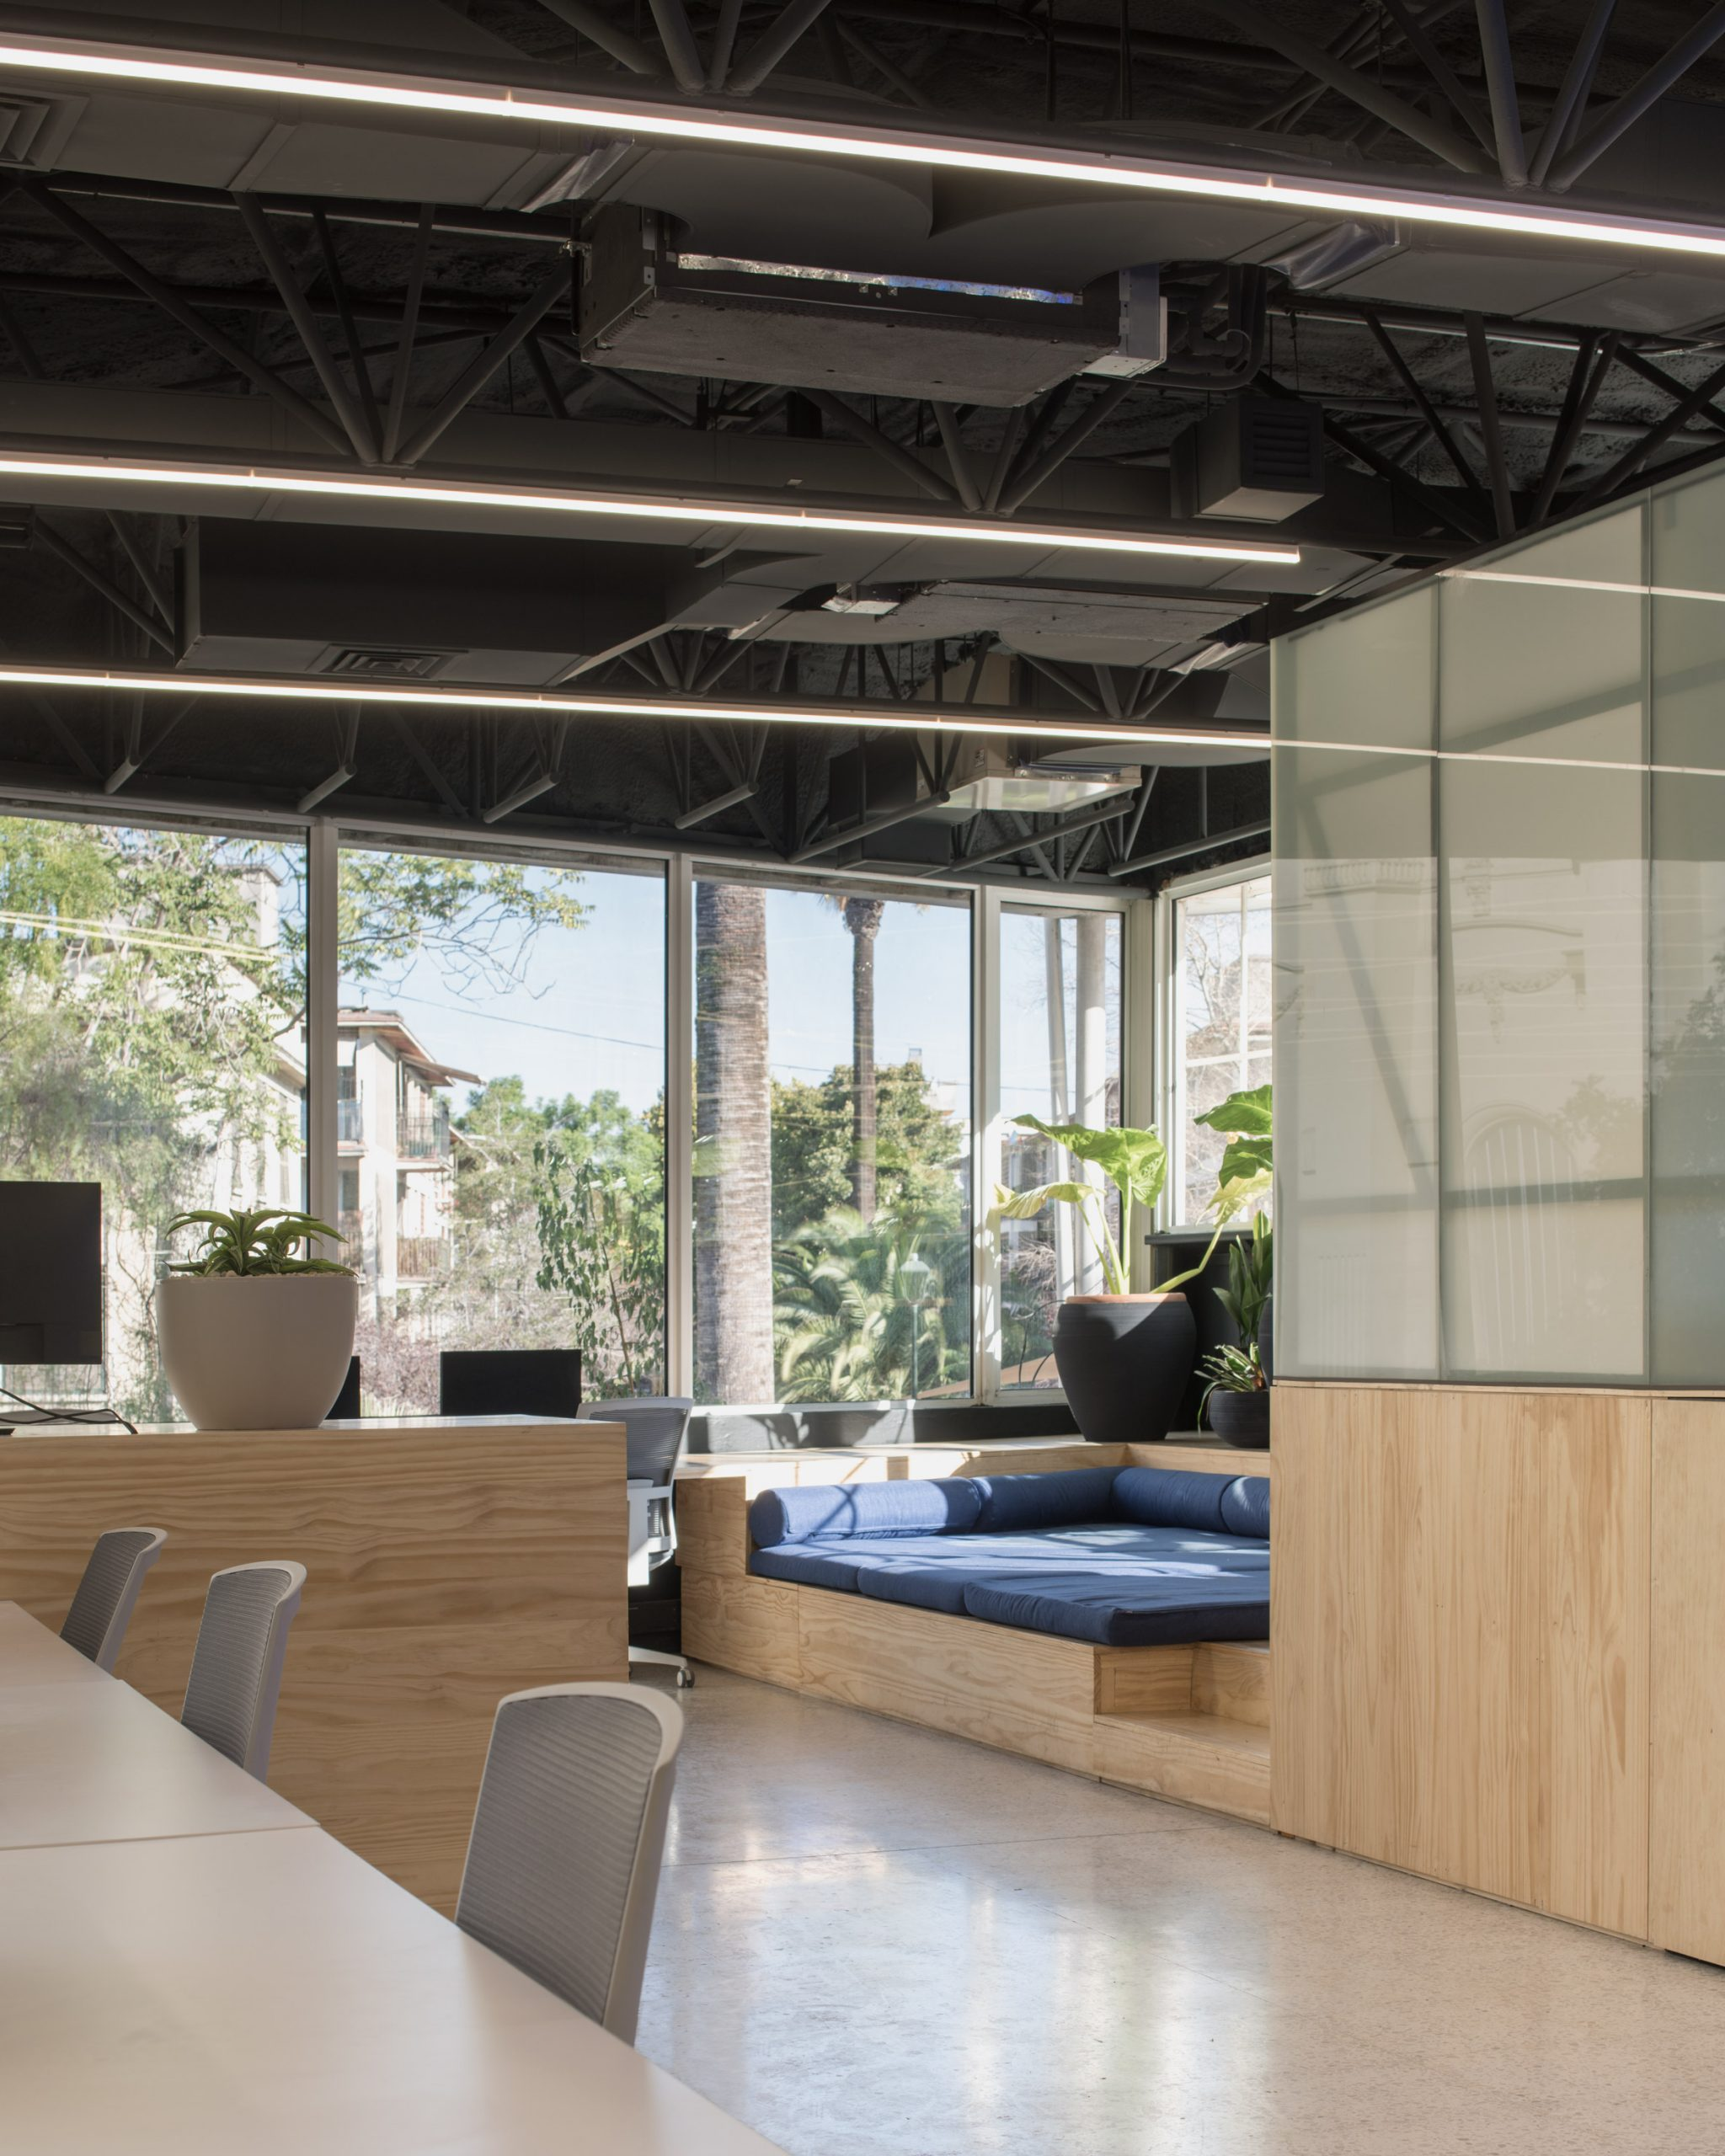 Fintual's office has airy spaces